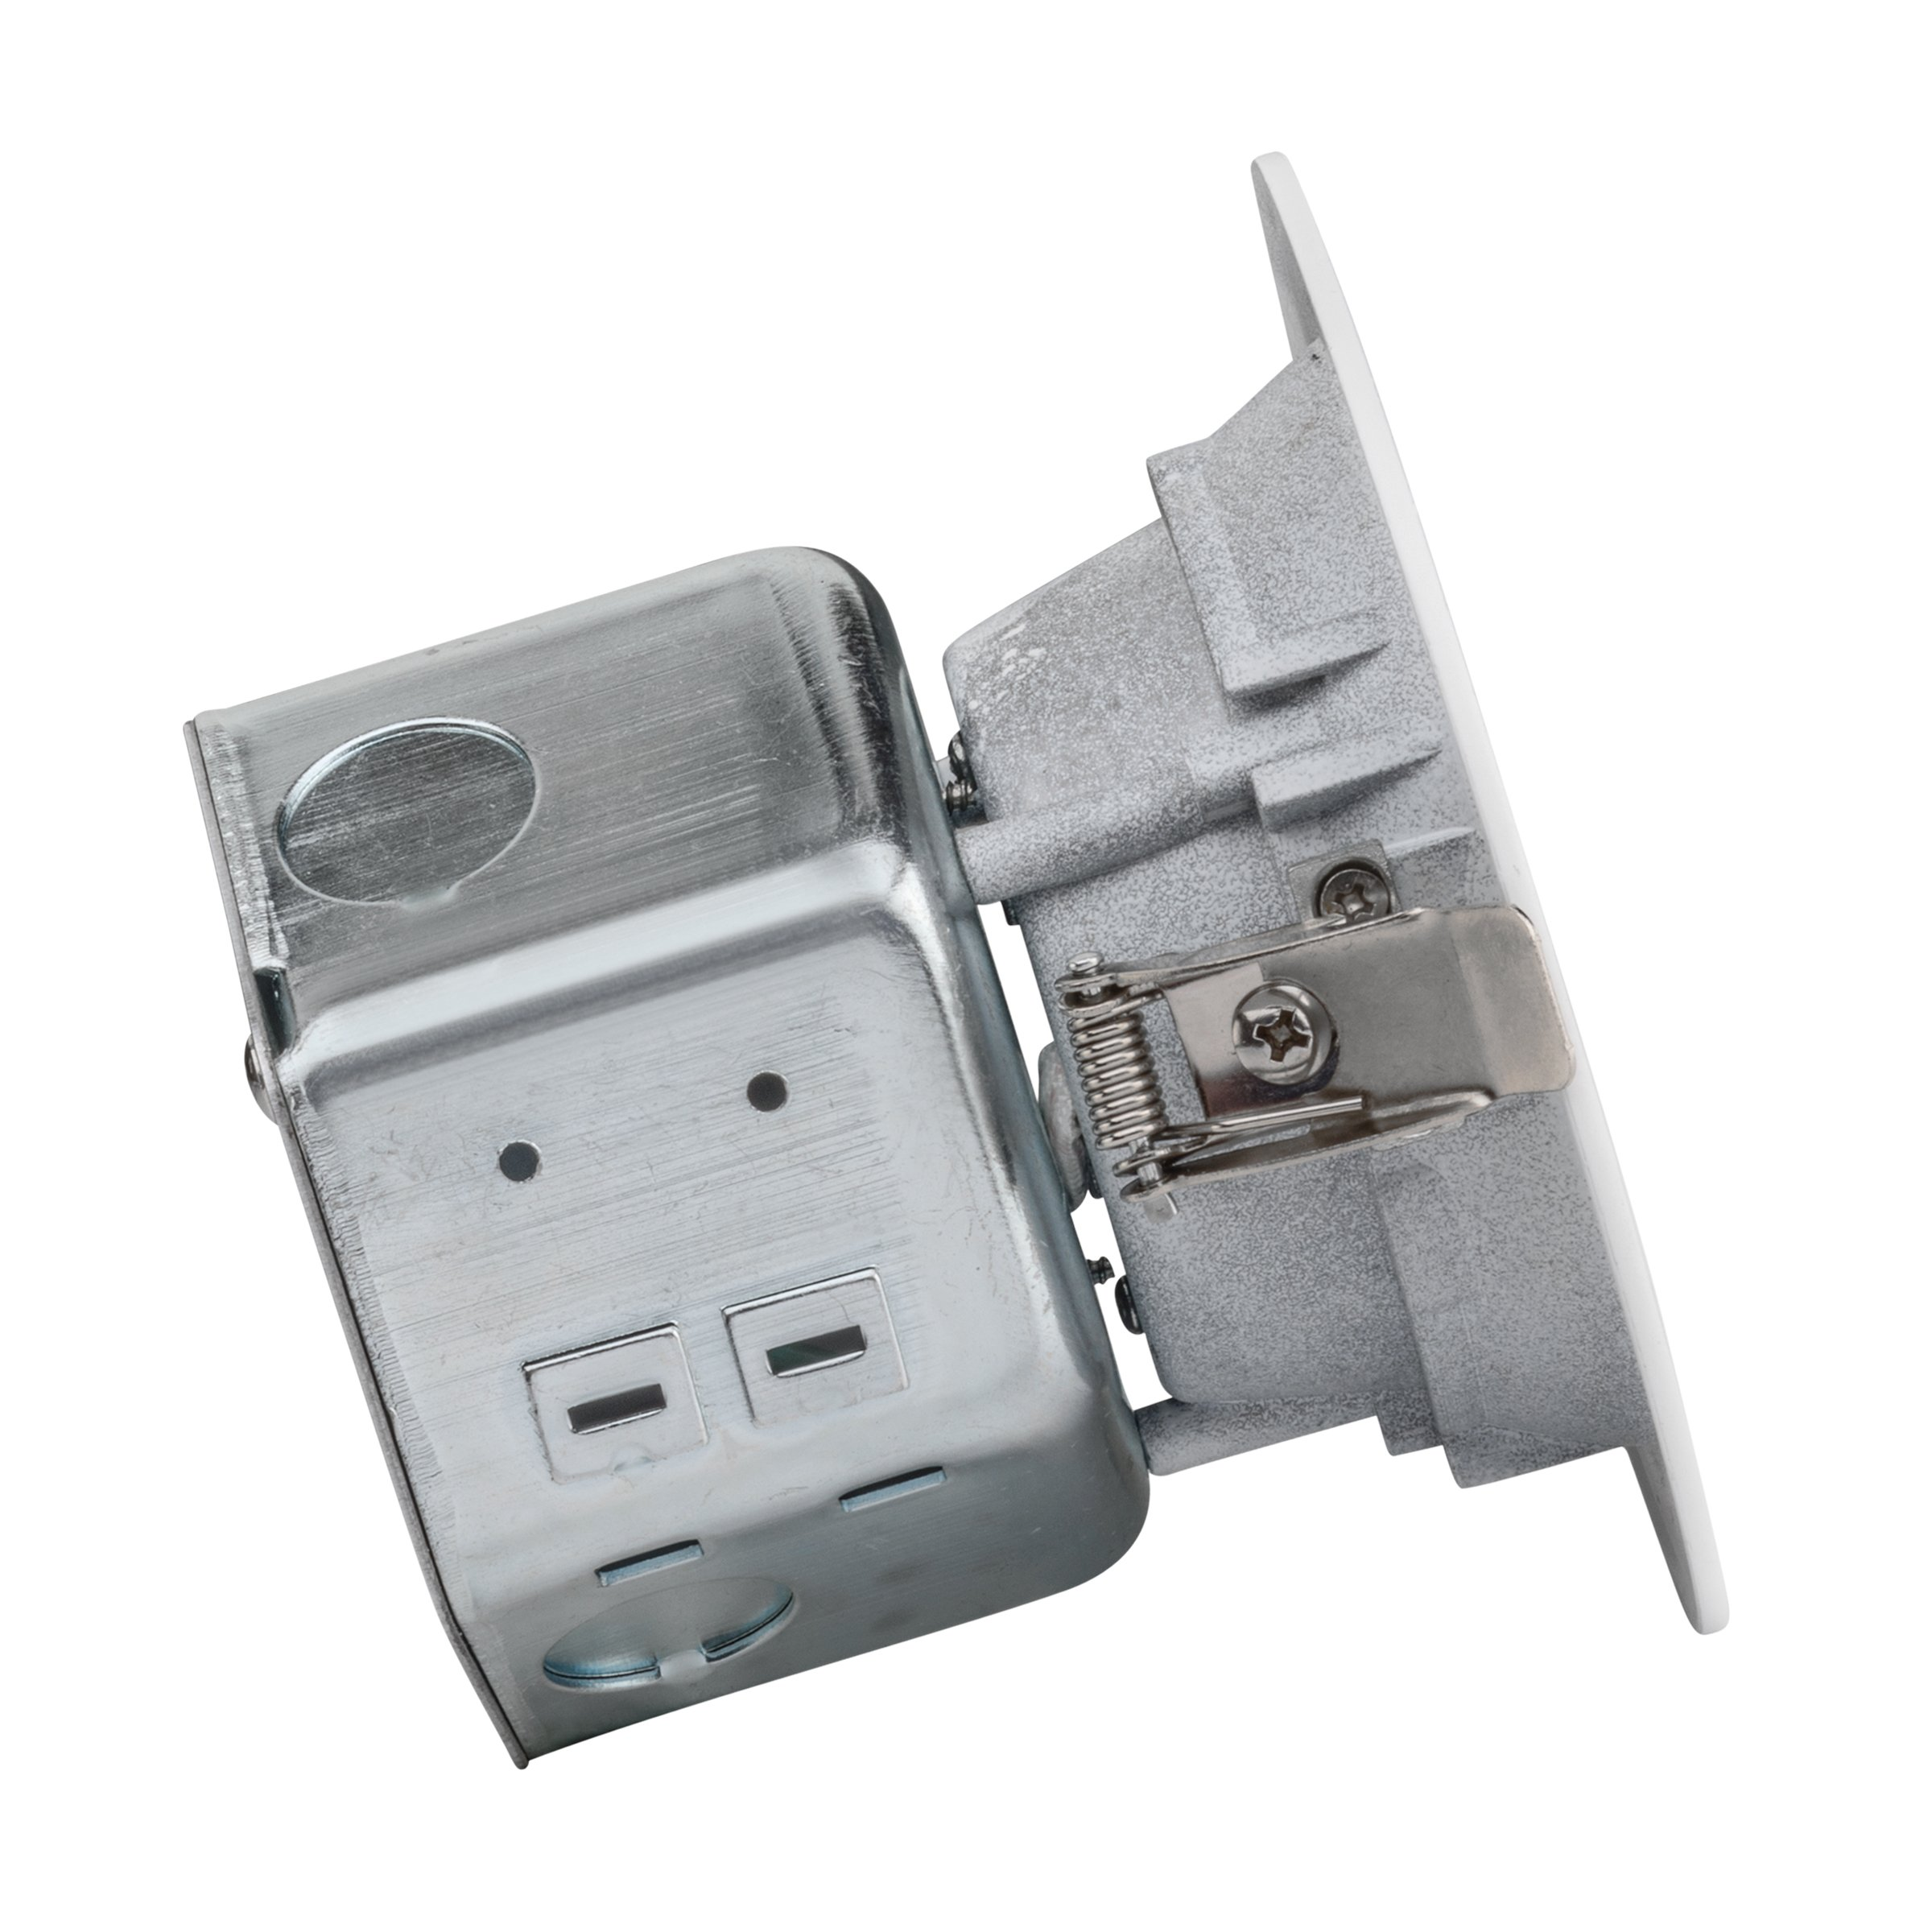 LEDQuant 4 Inch Junction Box LED Downlight, 10W (60W Equivalent), 3000K Soft White, ENERGY STAR, 700 Lumens, Wet Rated, Recessed Ceiling Light, 120V, No Can Needed, ETL Listed (3000K (Soft White)) by LEDQuant (Image #2)